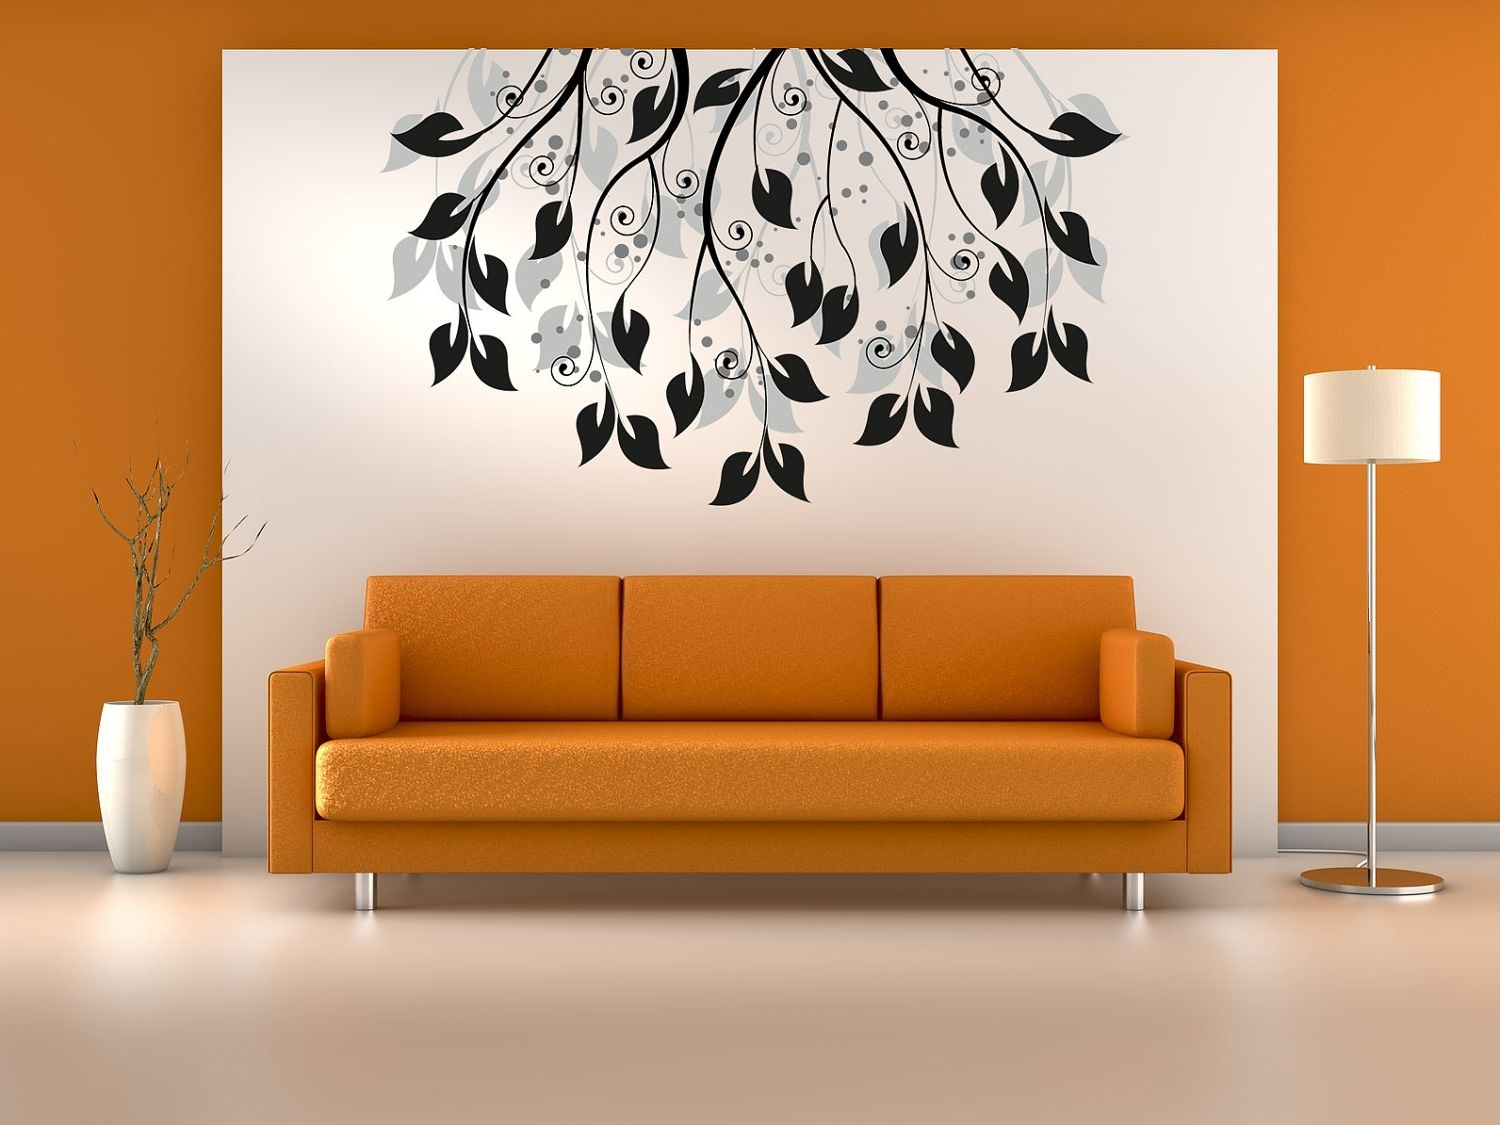 Living Room : Living Room Wall Decor Kitchen Utrails Home Design with regard to Most Current Home Decor Wall Art